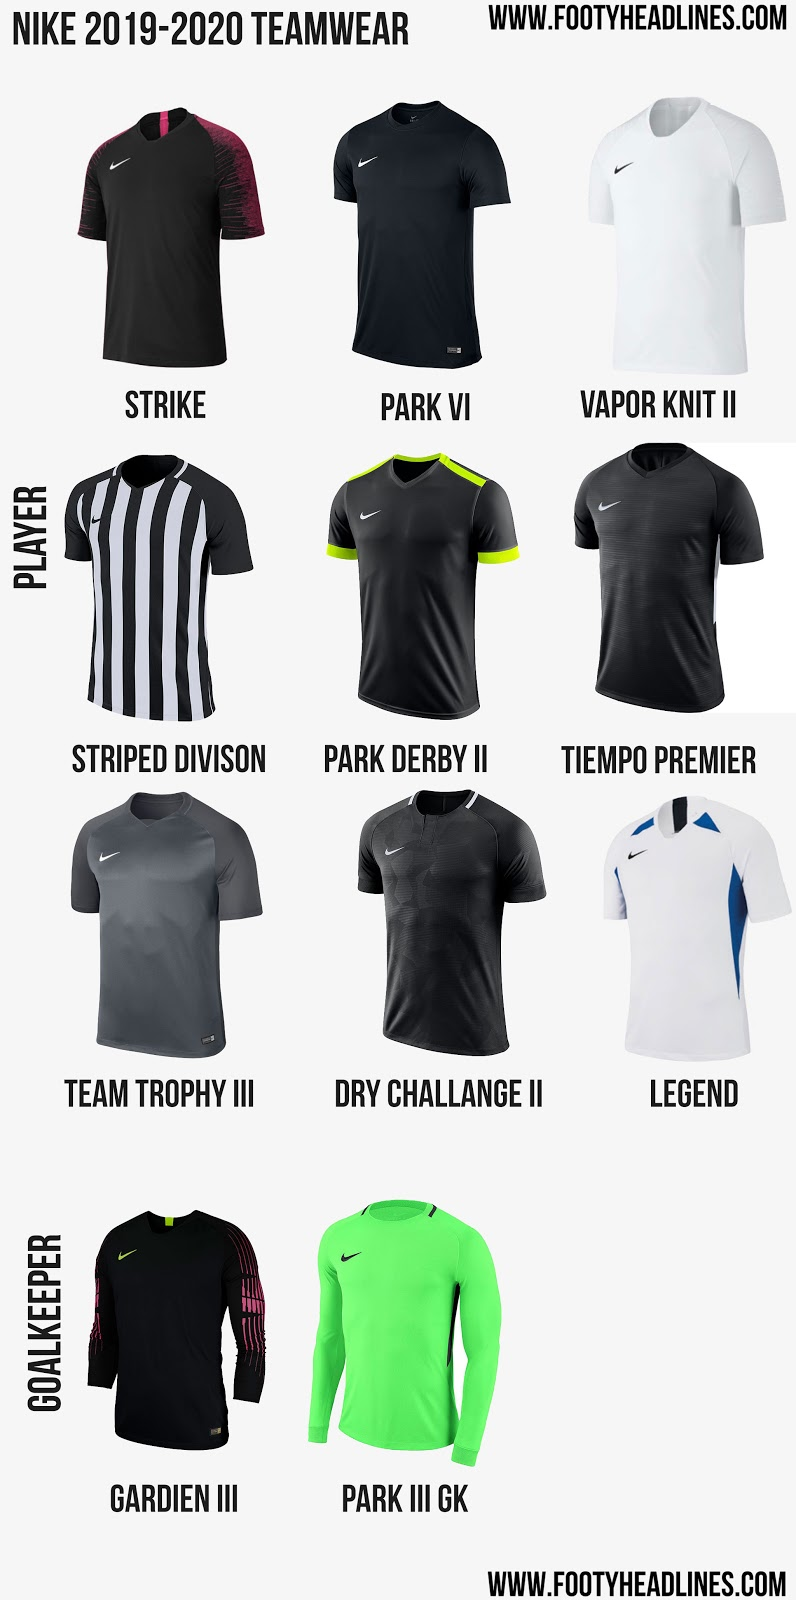 d08b3d8f7 Nike offers not less than 11 different teamwear kits for the 2019-20 season  (9 player shirts and 2 goalkeeper jerseys). There are at three new  templates ...